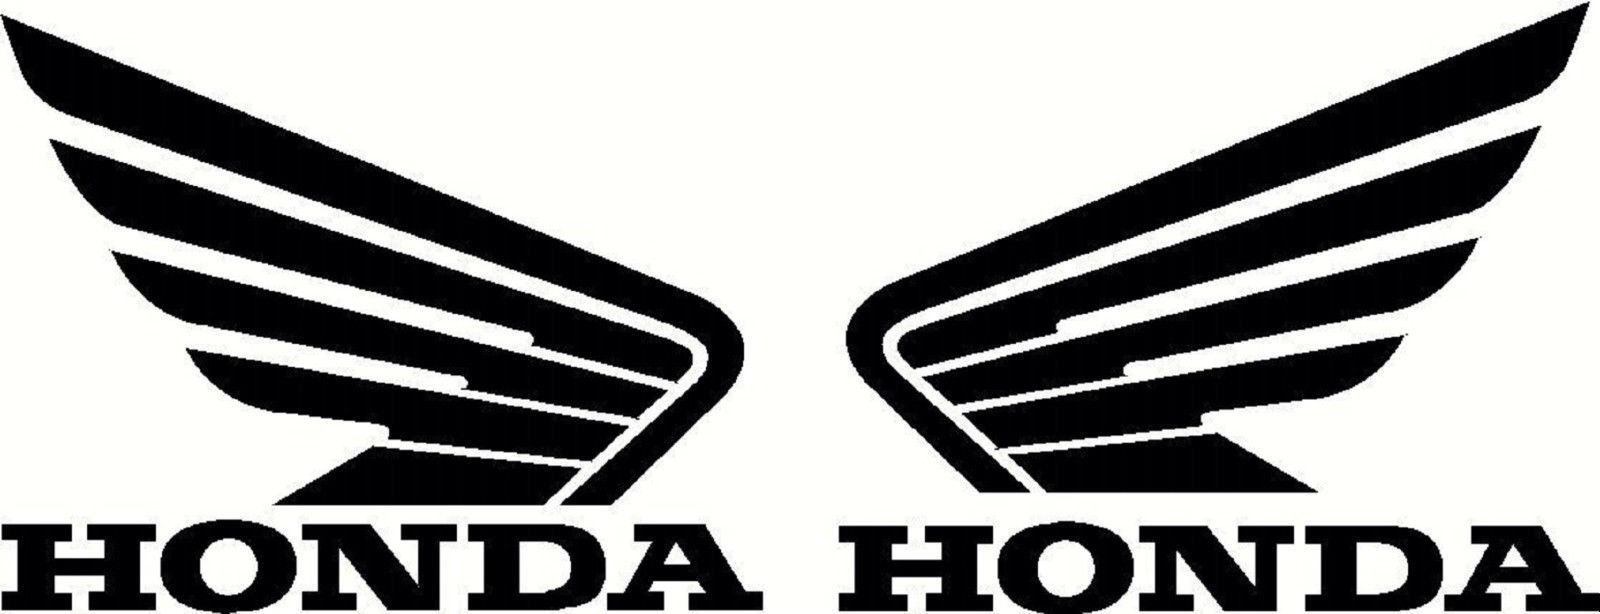 Vintage Honda Motorcycle Decals